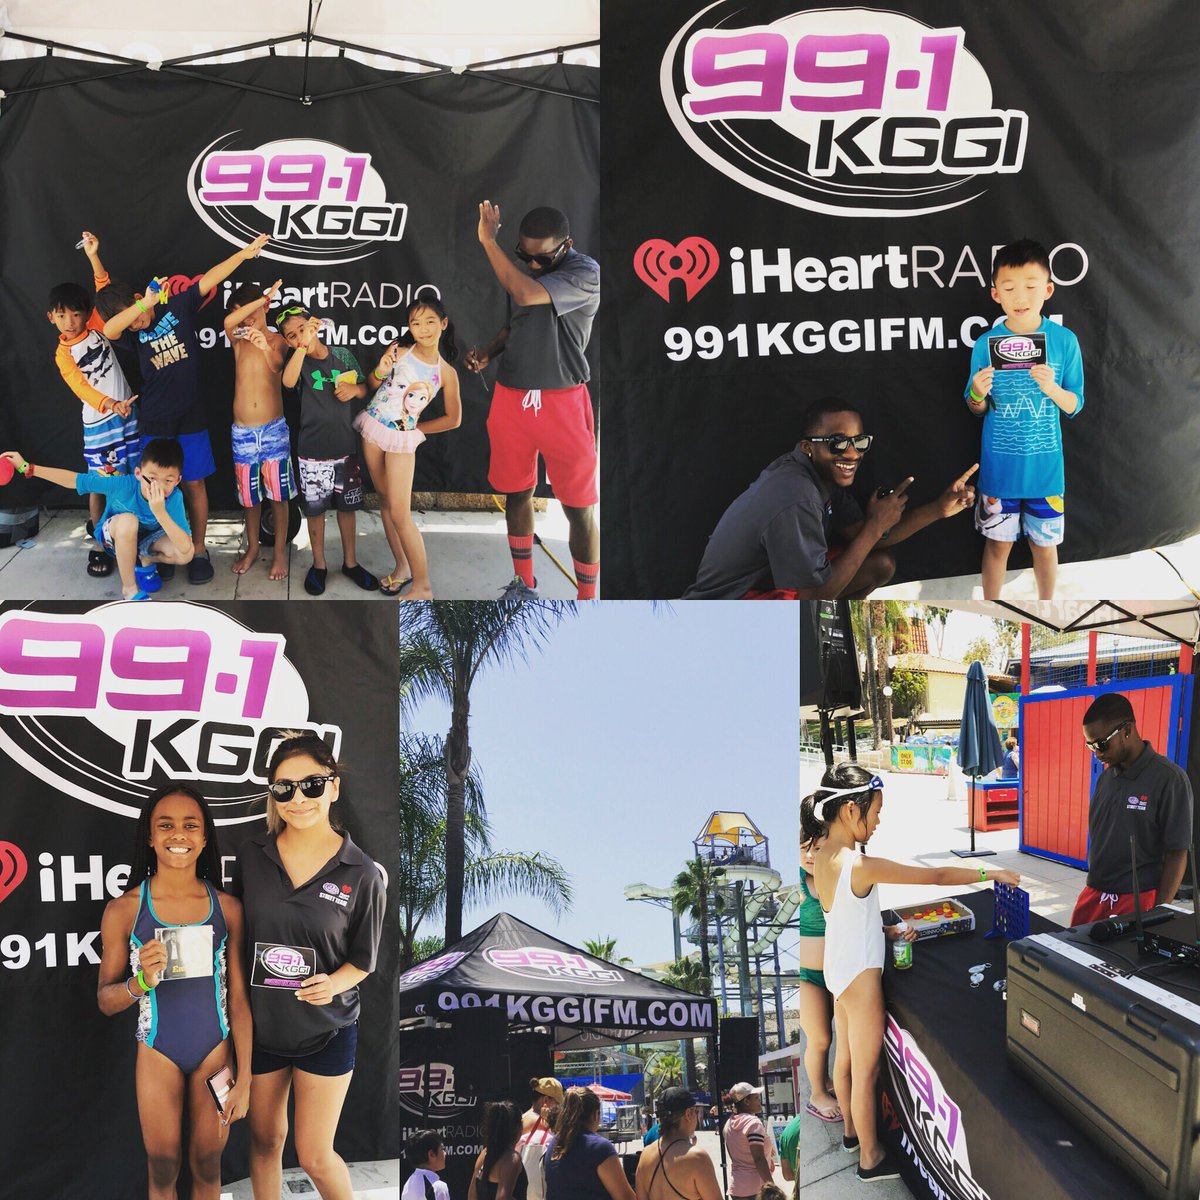 991 KGGI Hey Guys Street Team Is Out Here At Raging WatersHaving Fun In The Sun Giving Away Some Prizes We Will Be Till 2pm So